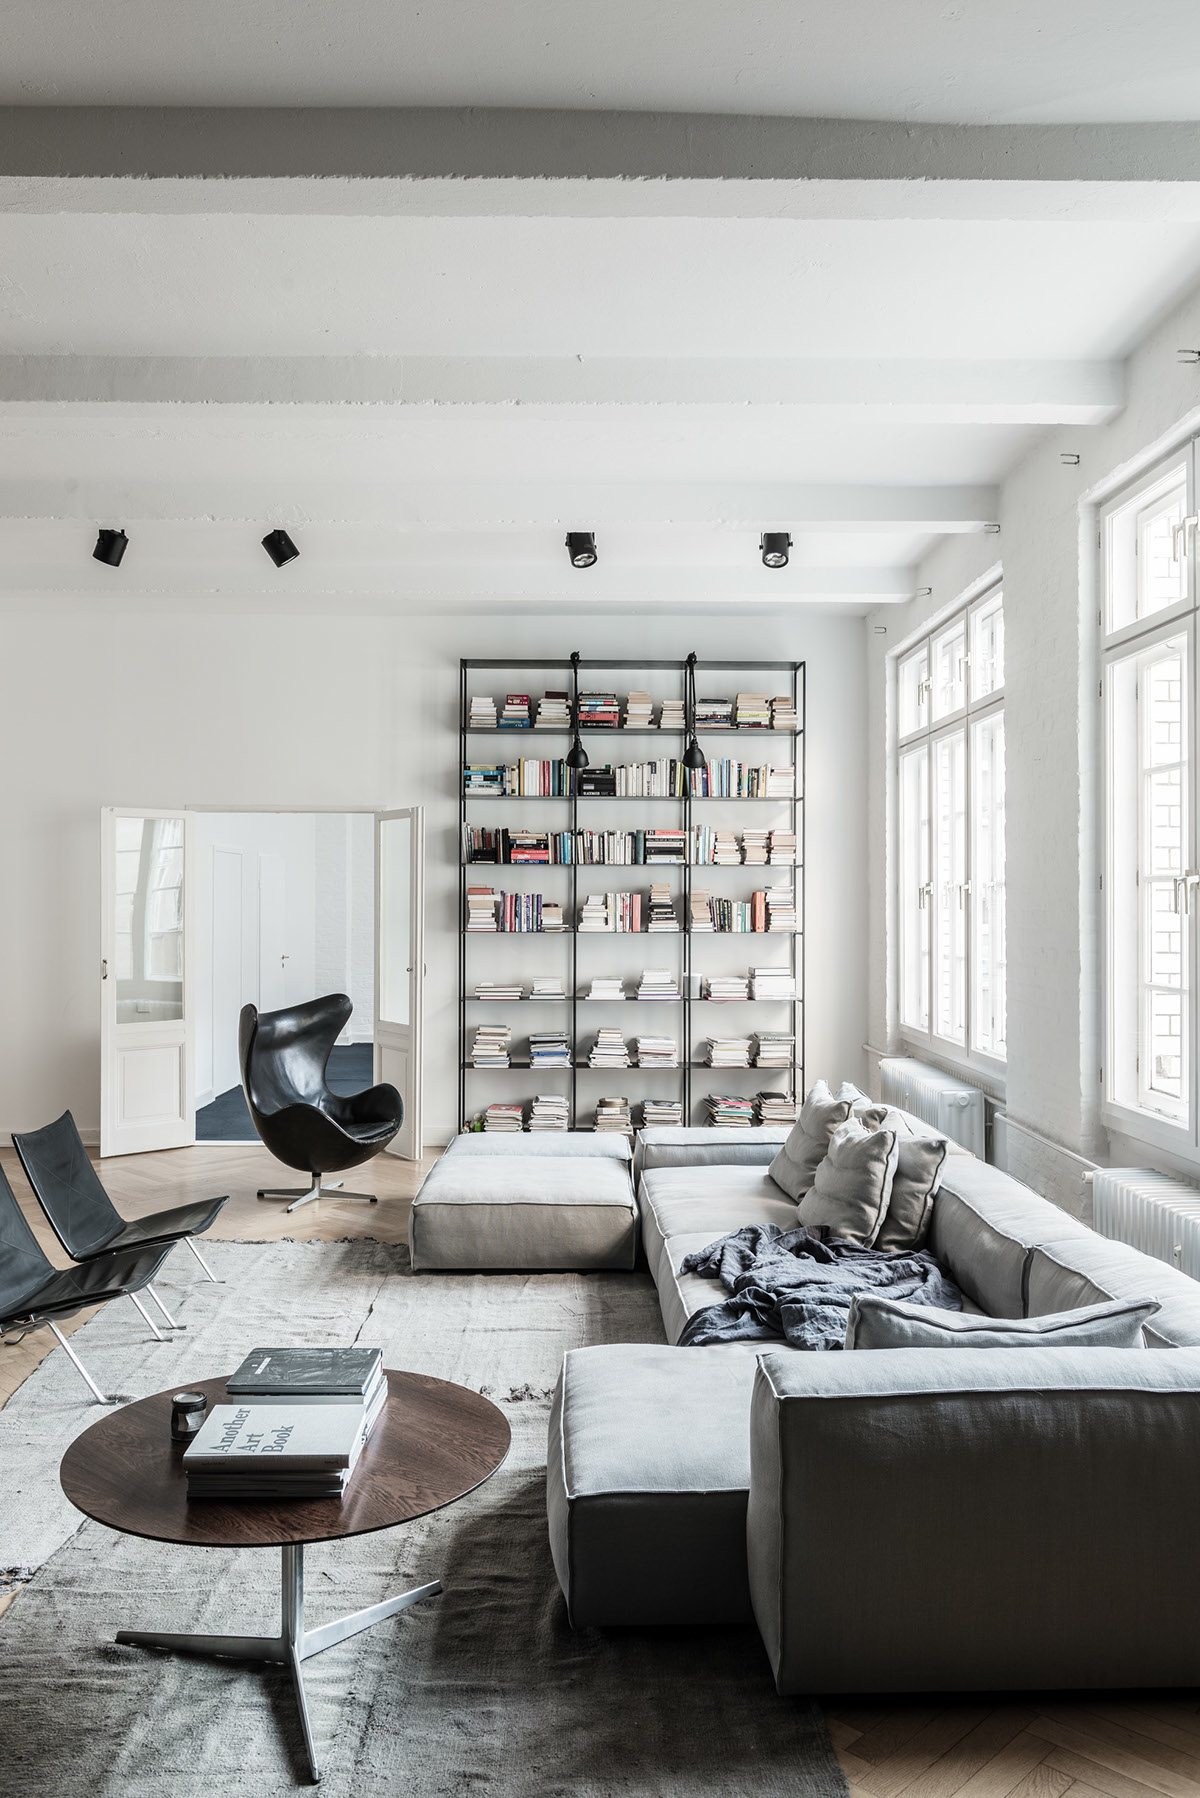 White Distressed Interior Ideas - Stylish exposed brick wall lofts